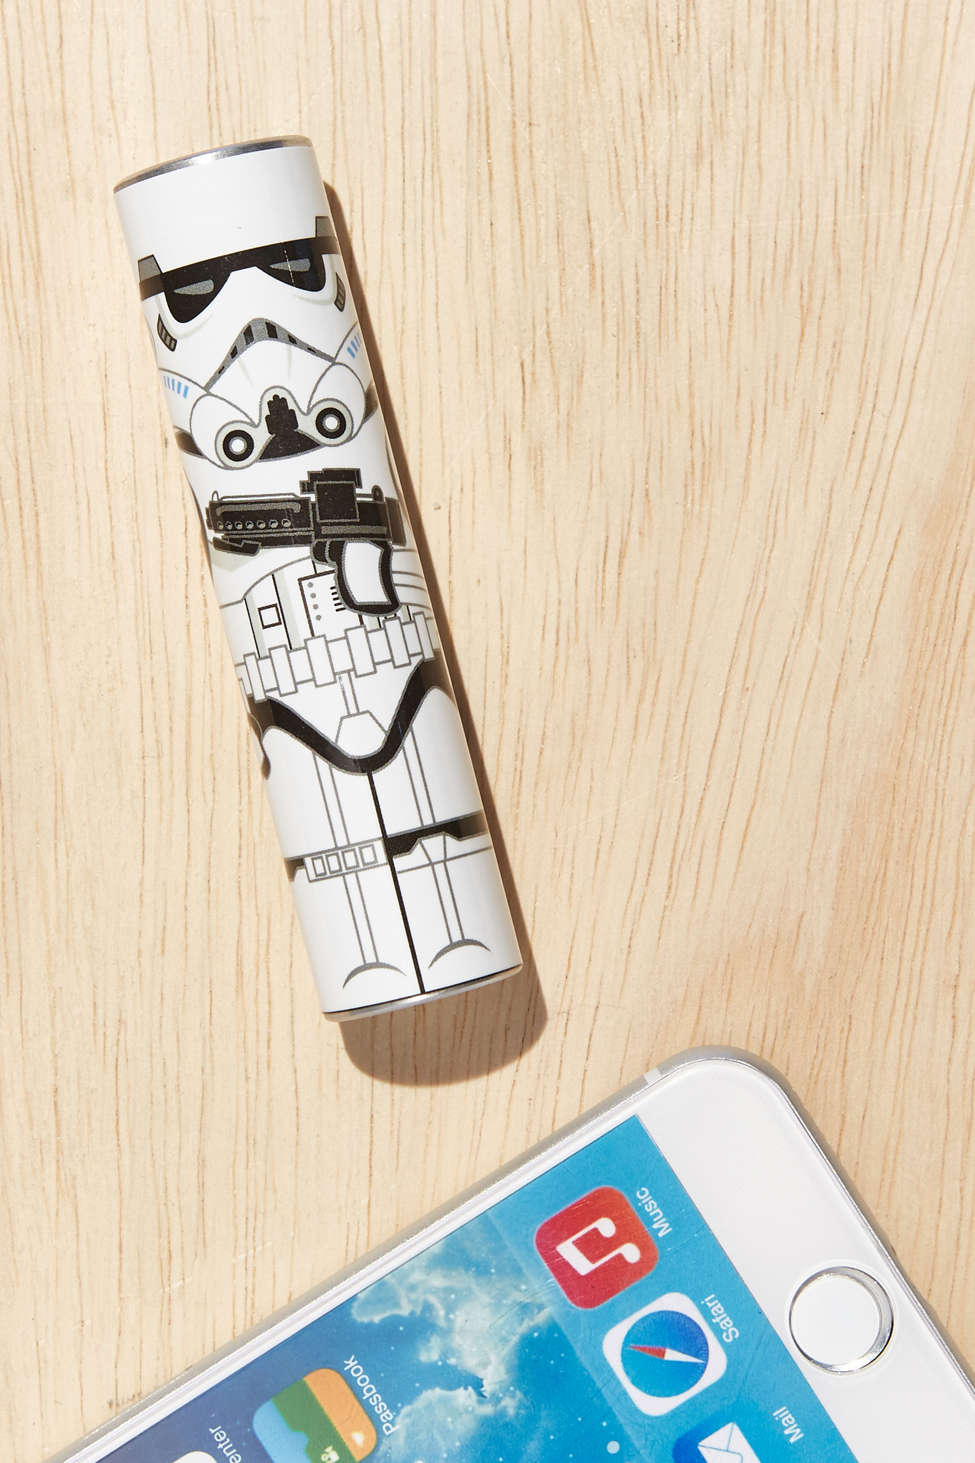 Super useful gift - a Star Wars back-up battery